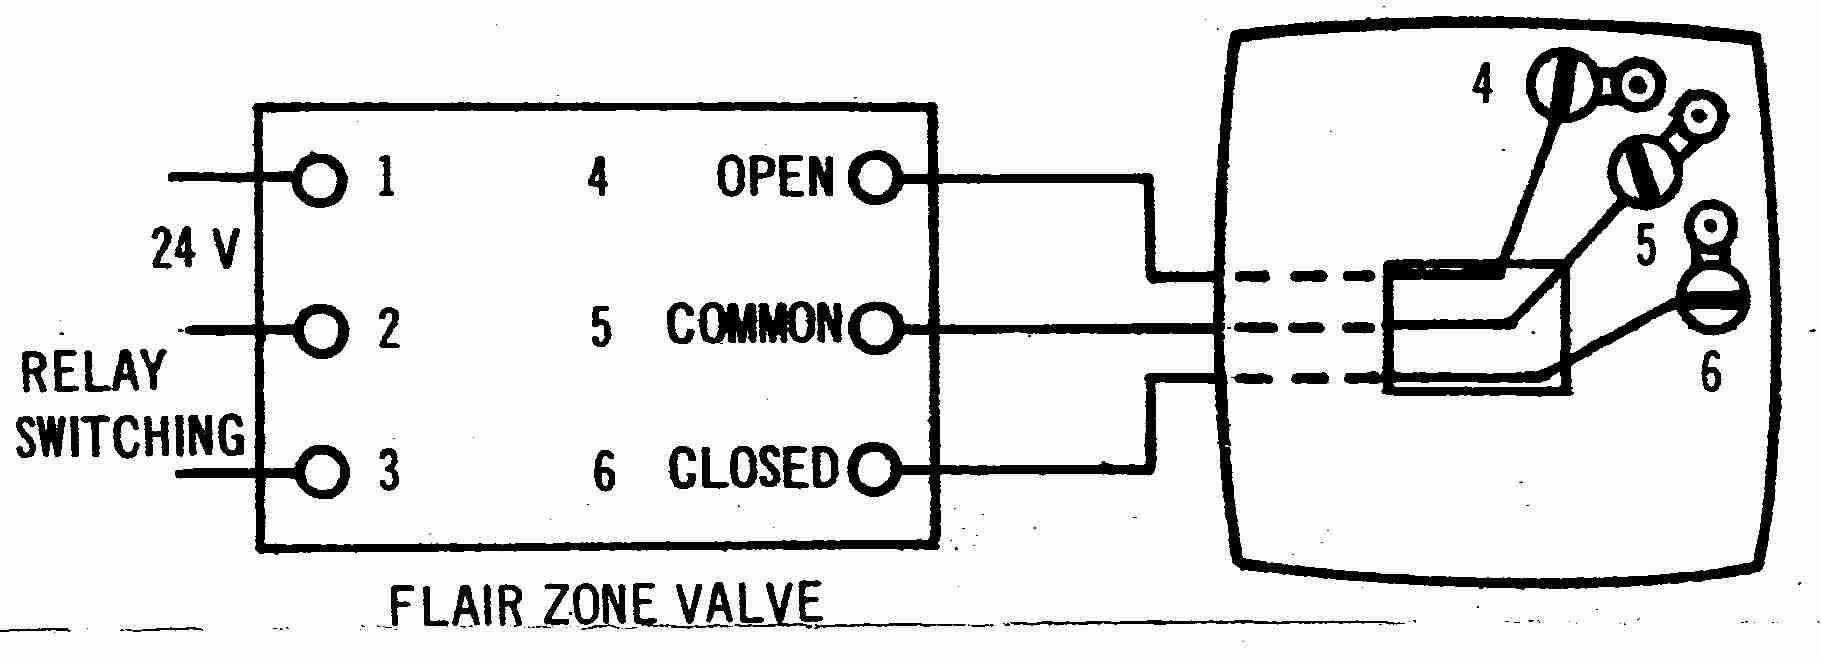 zone valve wiring installation & instructions: guide to heating, Wiring diagram